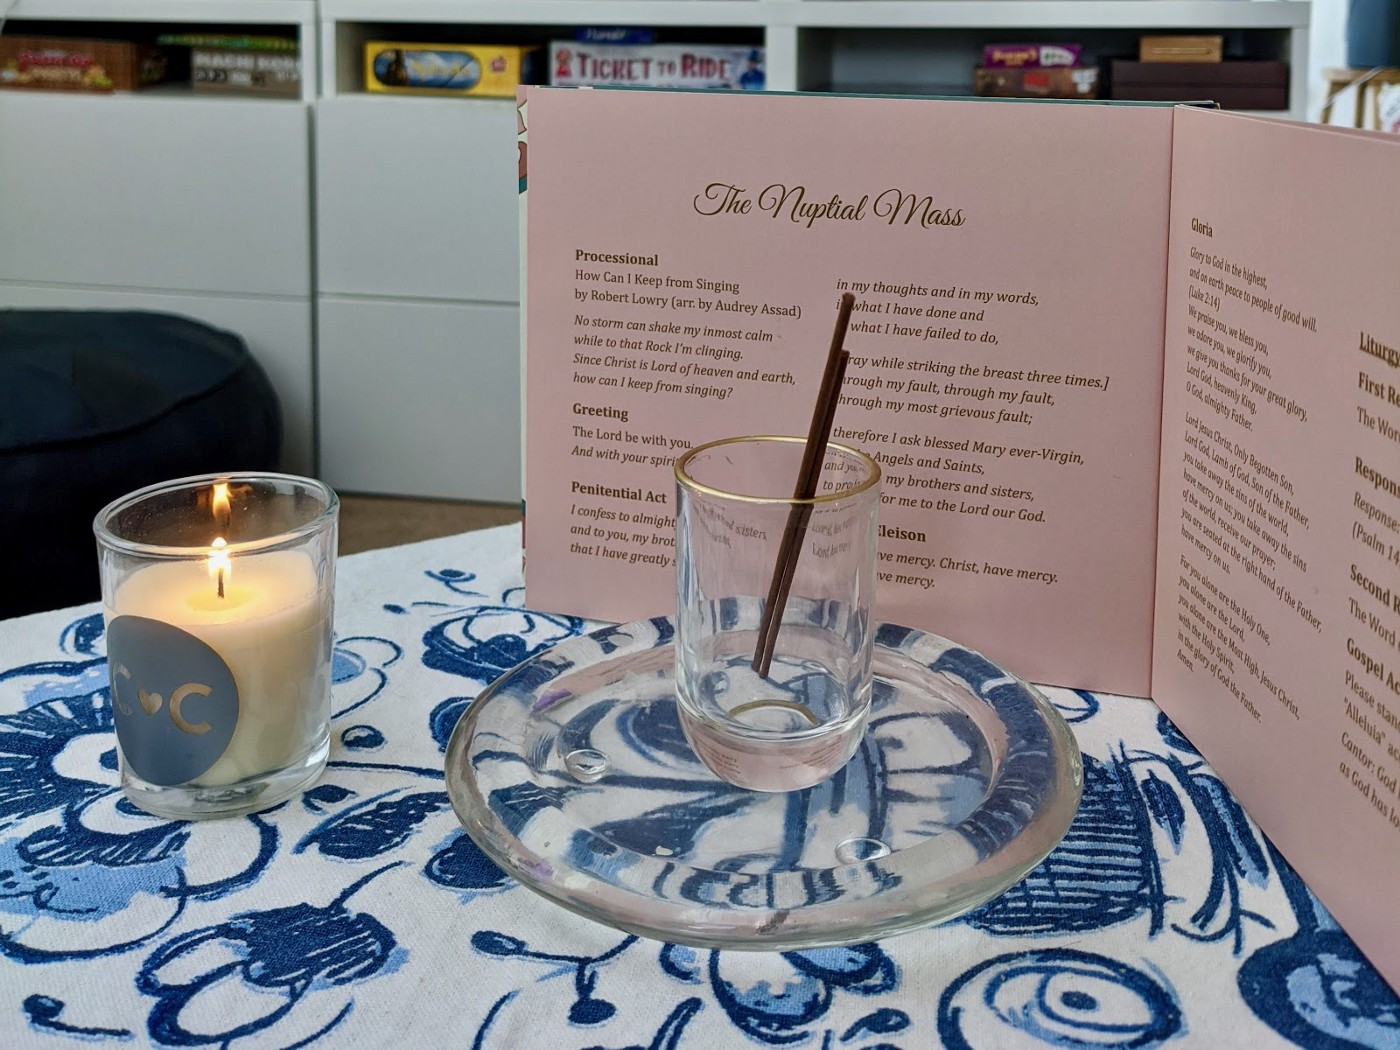 Incense, a candle, and a bound wedding program on a table with a blue and white floral tablecloth.